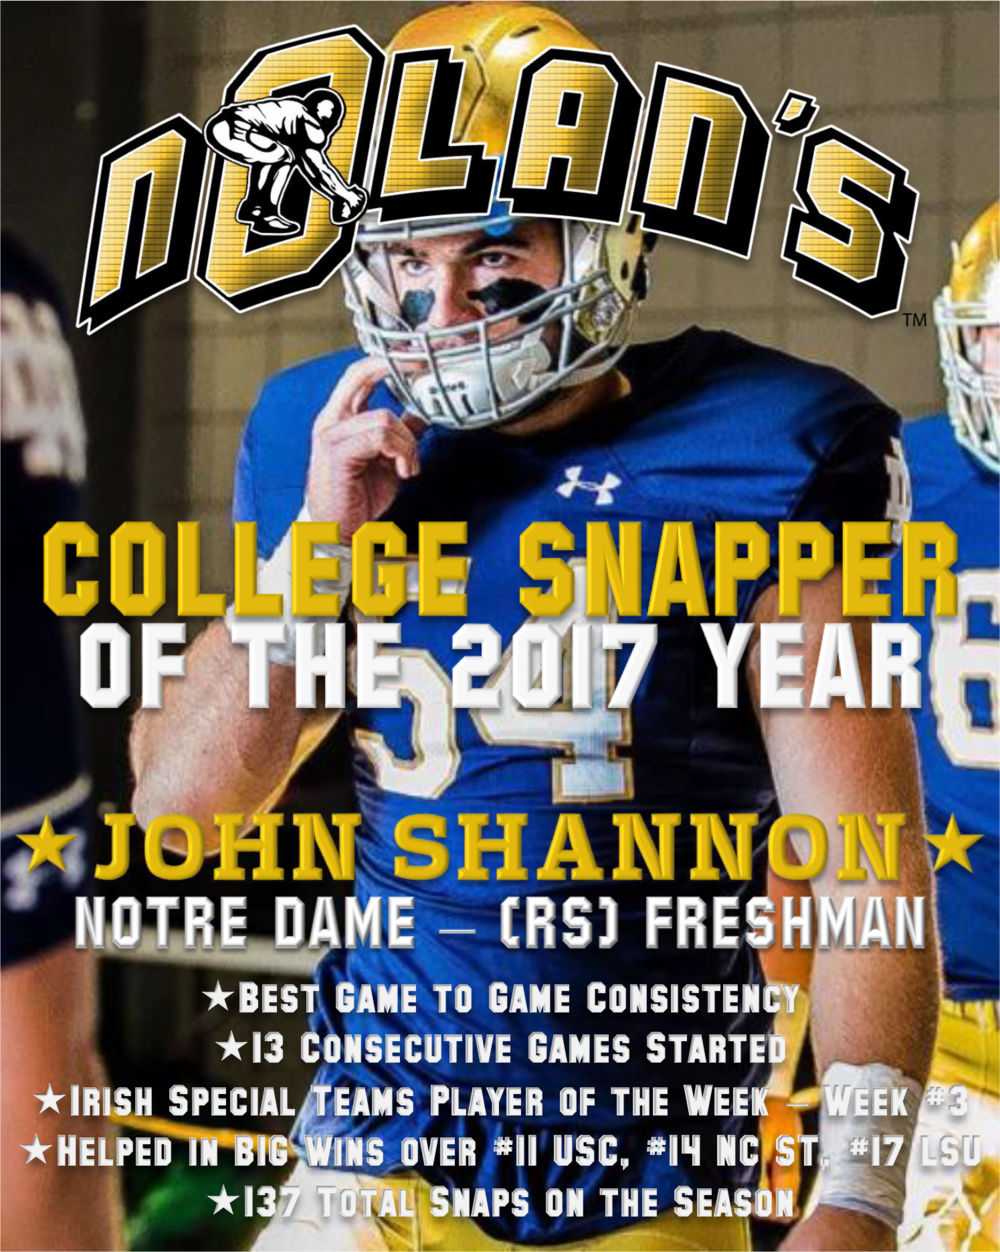 NOLAN'S-SNAPPER-OF-THE-YEAR---2017---John-Shannon.png